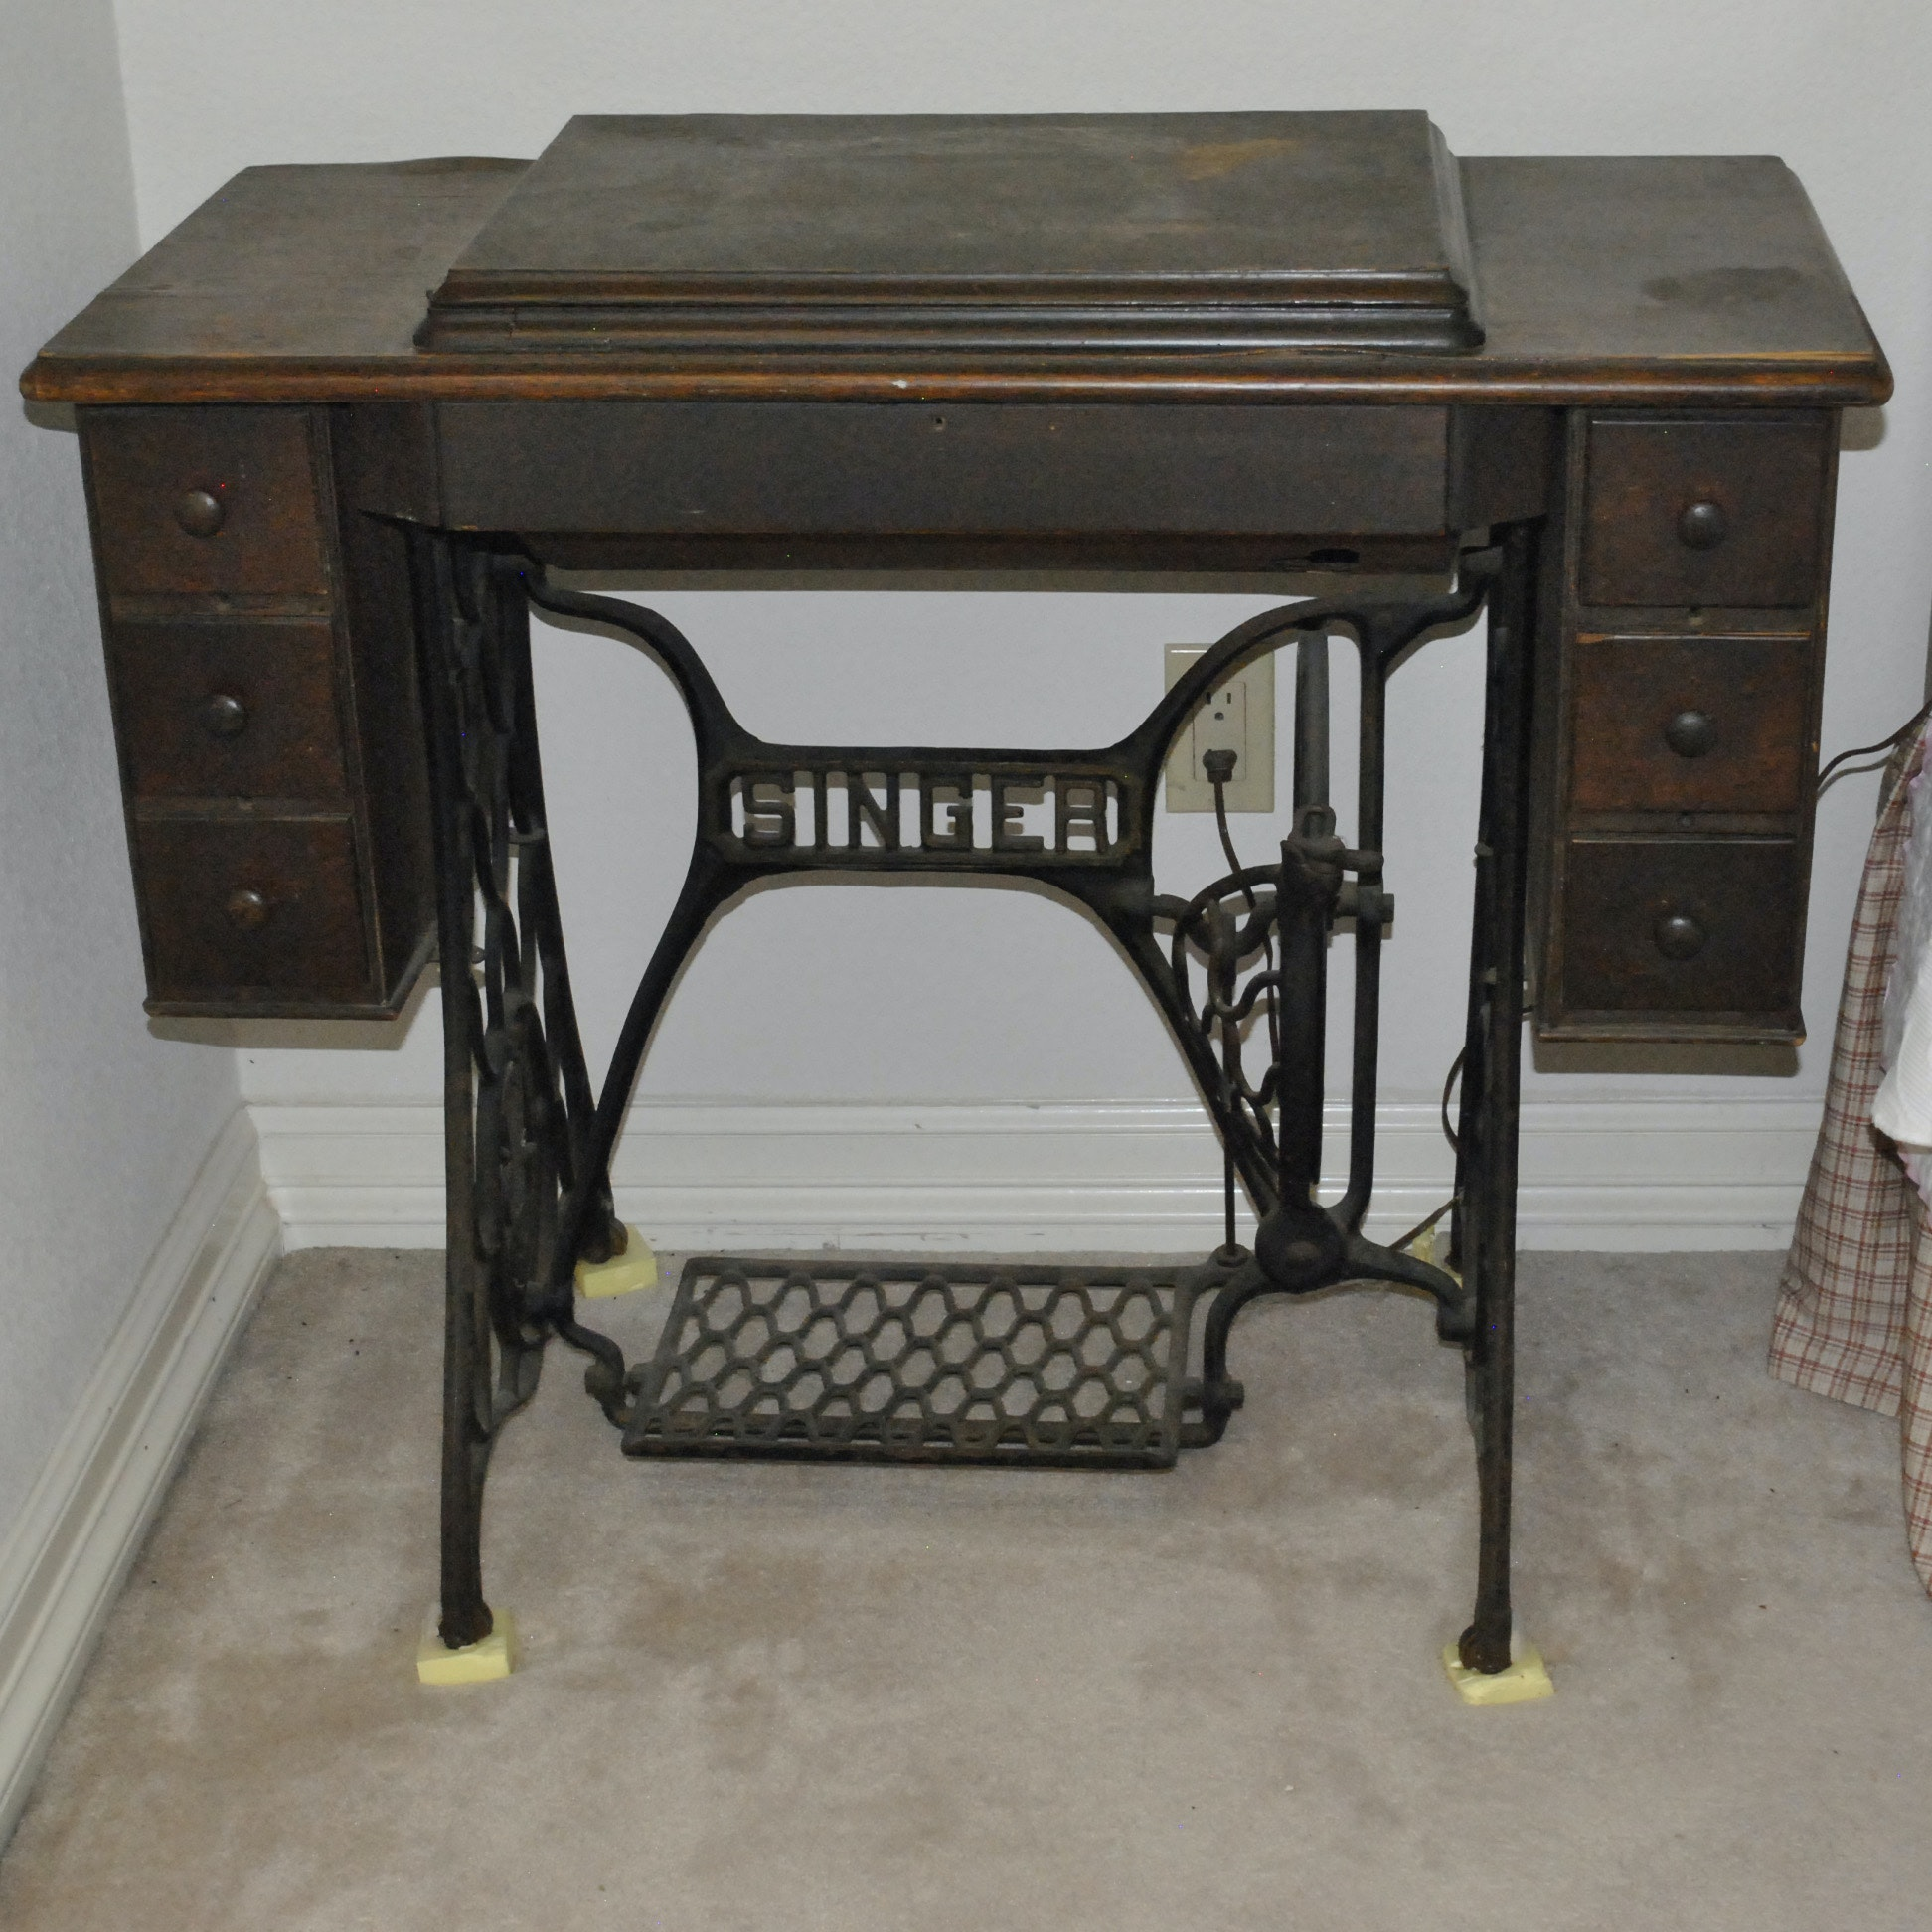 Antique Singer Sewing Machine Treadle Table